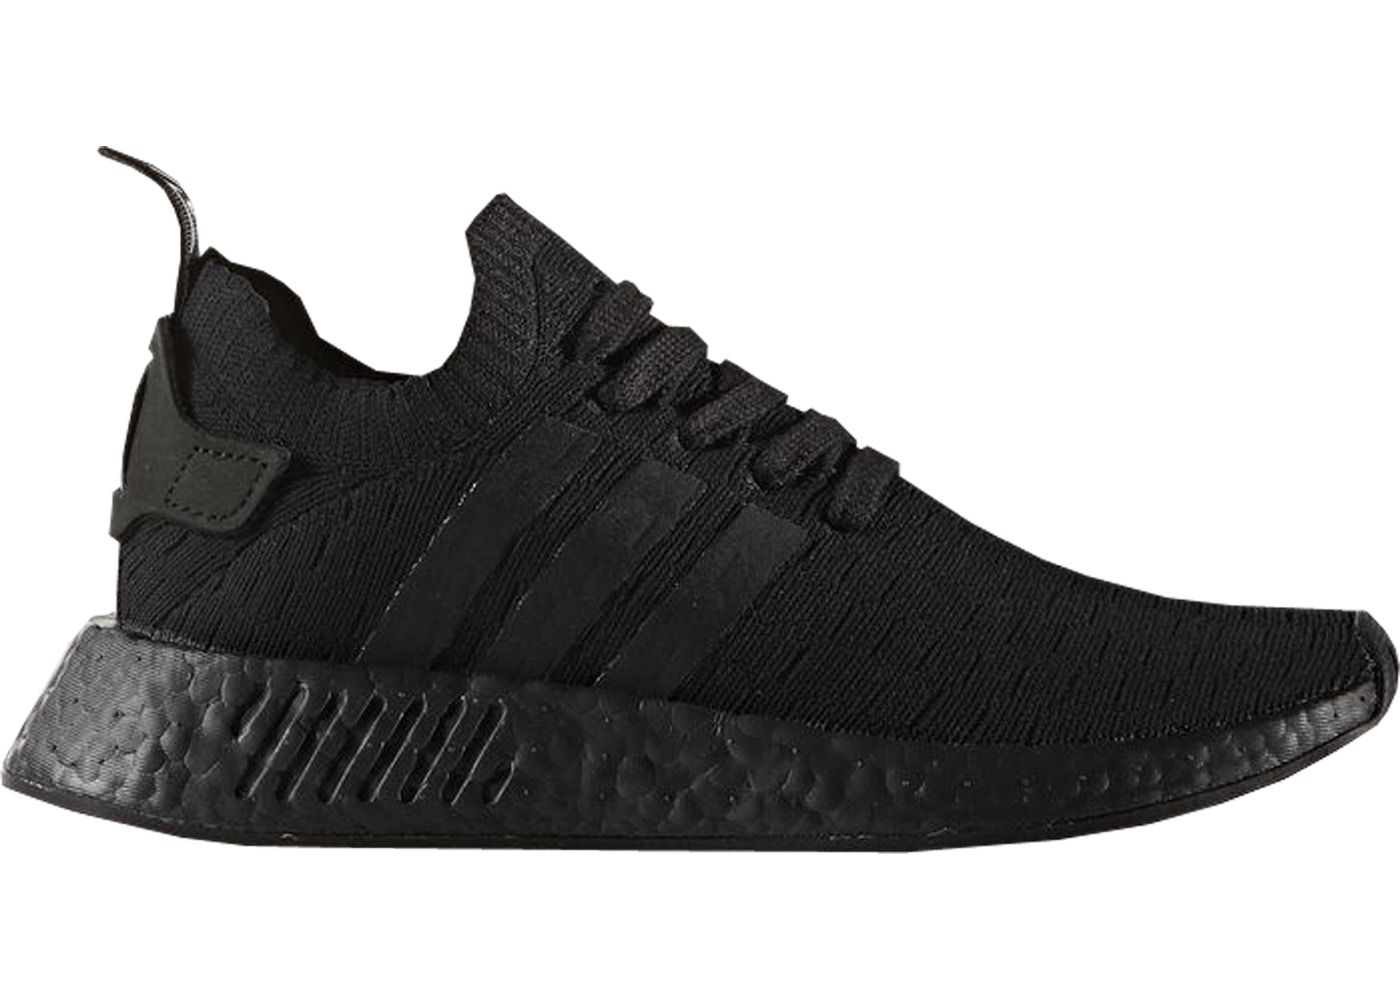 6c81088ca5d6a UPDATE  The adidas NMD R1 Primeknit